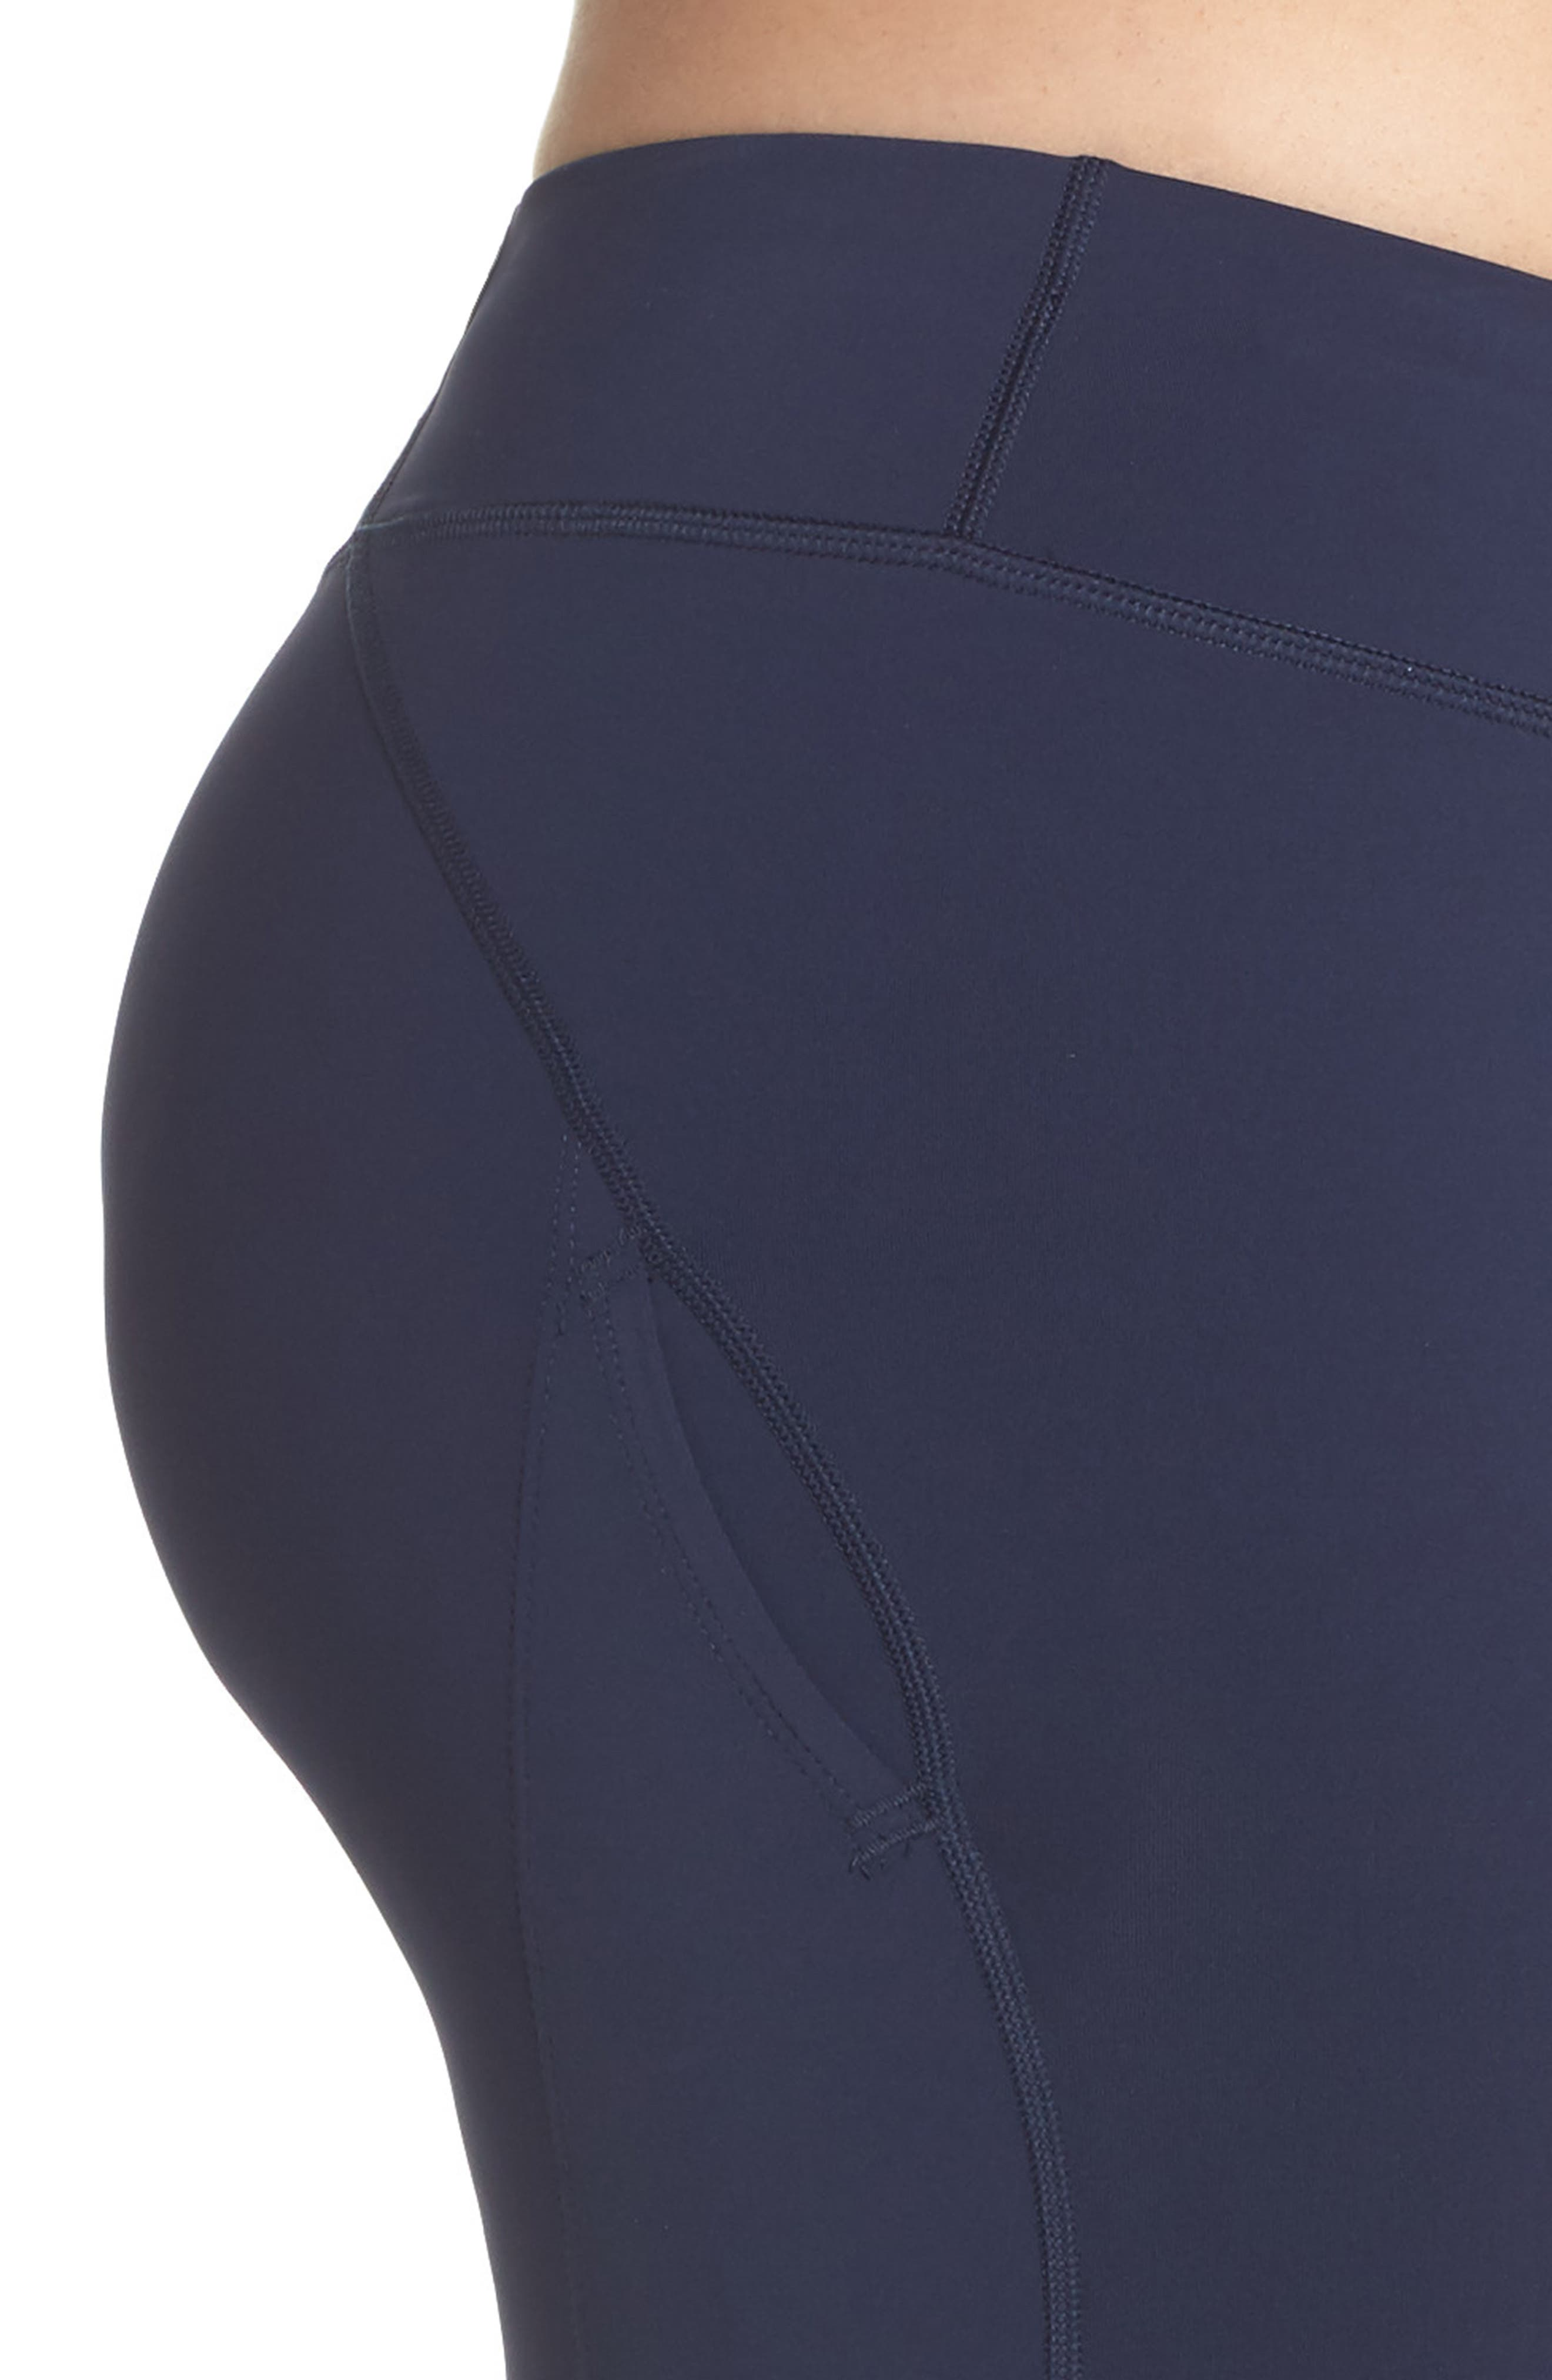 Power Epic Lux Crop Running Tights,                             Alternate thumbnail 4, color,                             OBSIDIAN